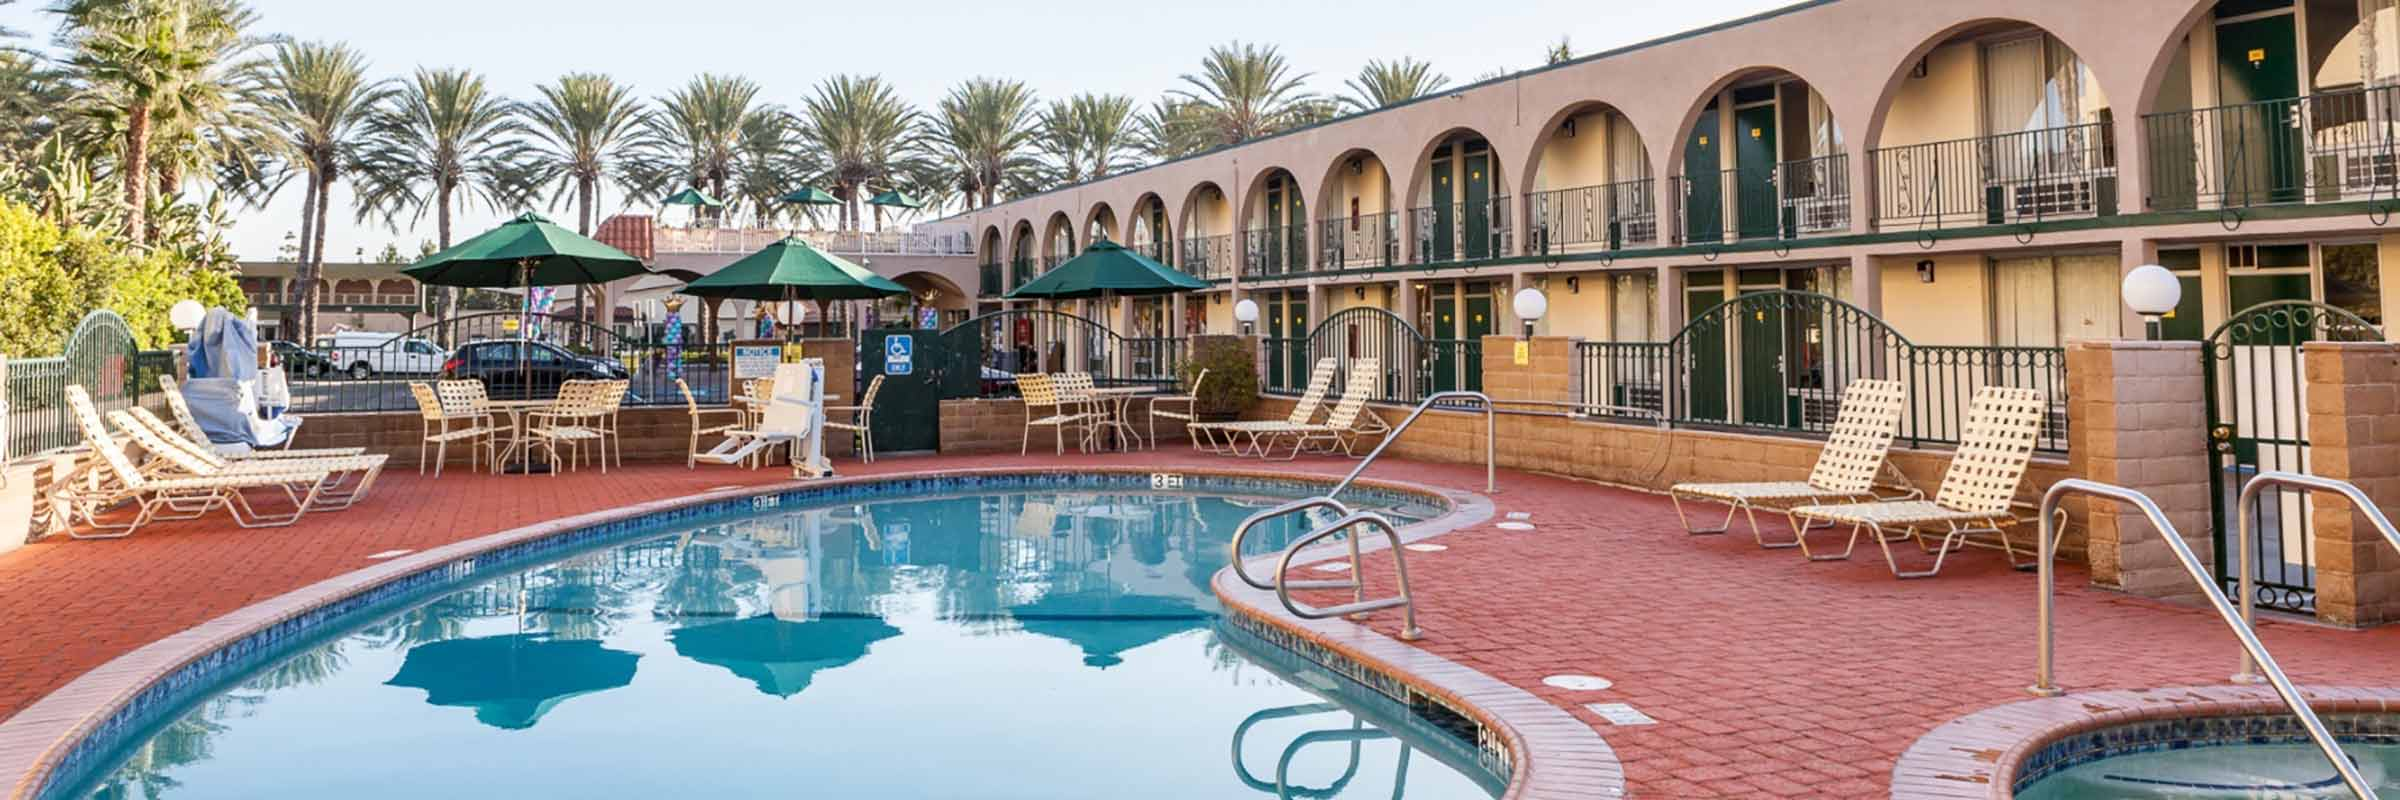 Hotels Near Disneyland With Hot Tub In Room